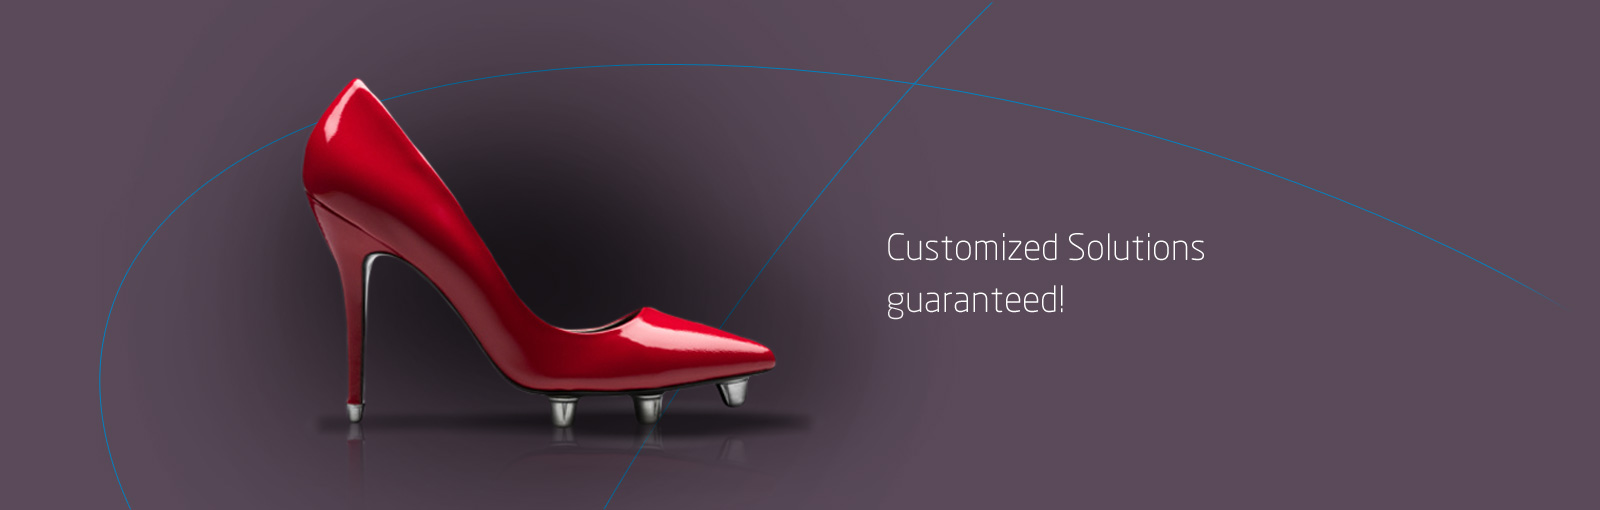 Customized Solutions Guaranteed